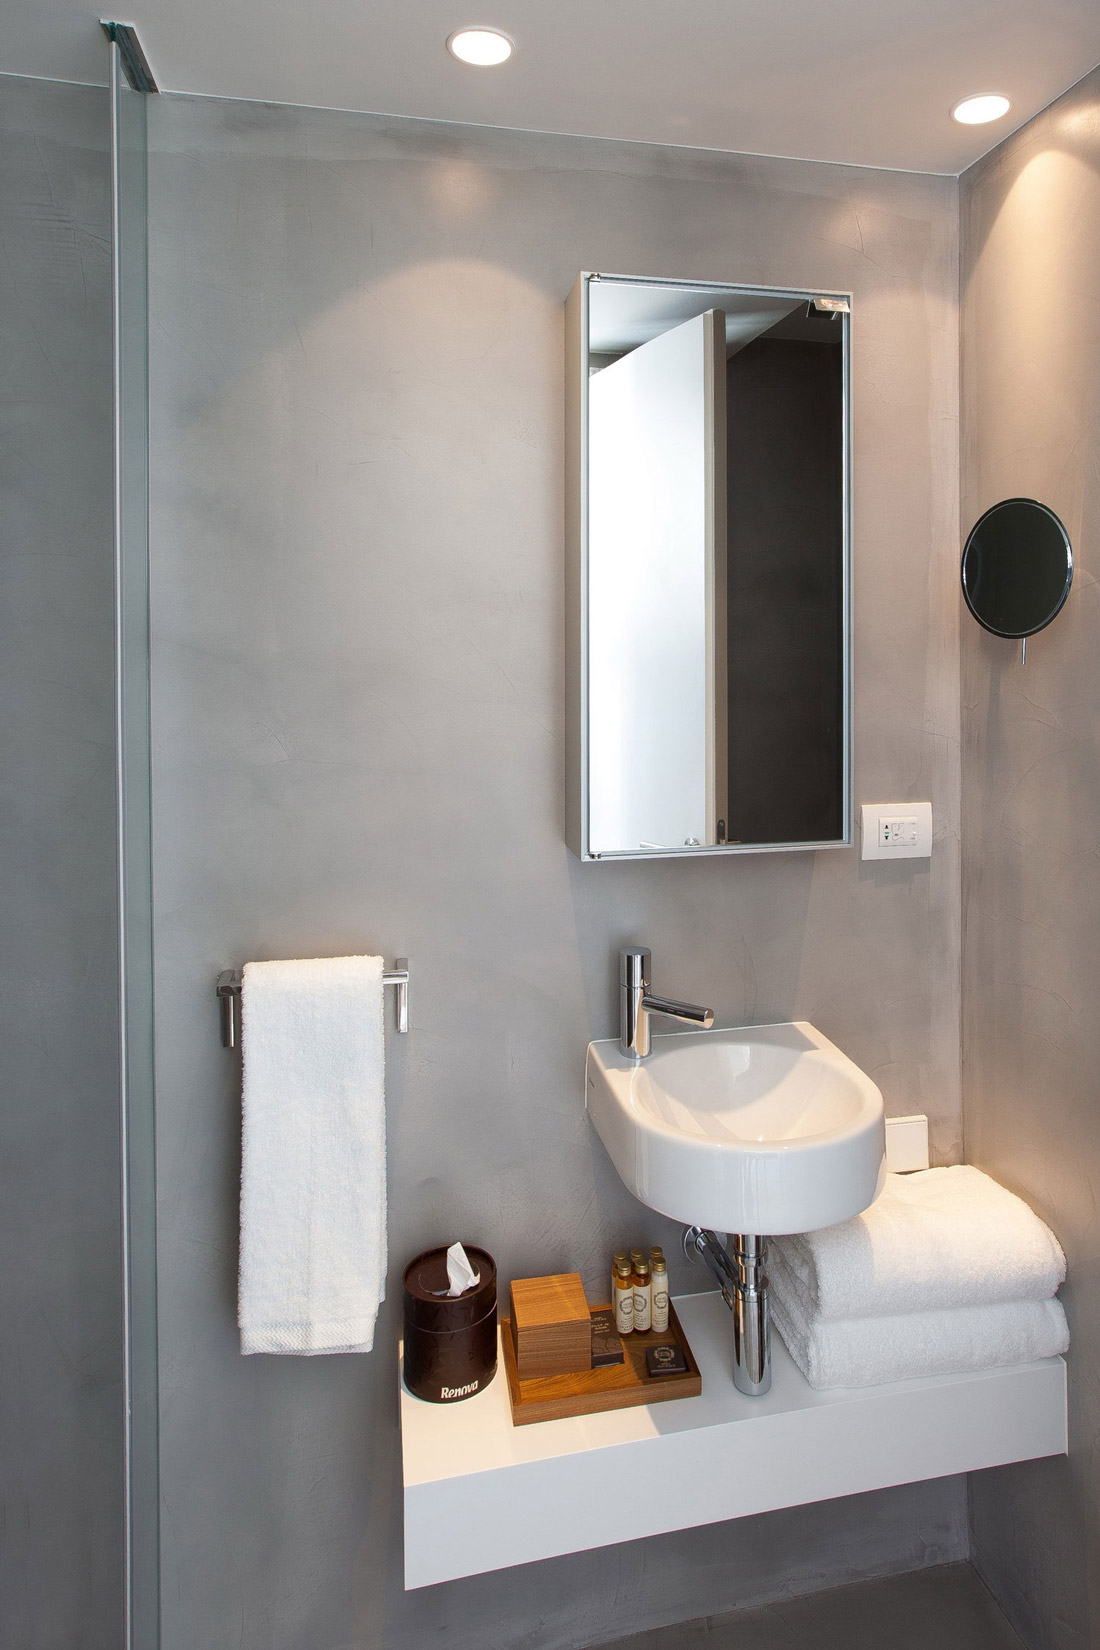 Bathroom Sink Mirror Boutique Hotel In The Heart Of Alfama Lisbon